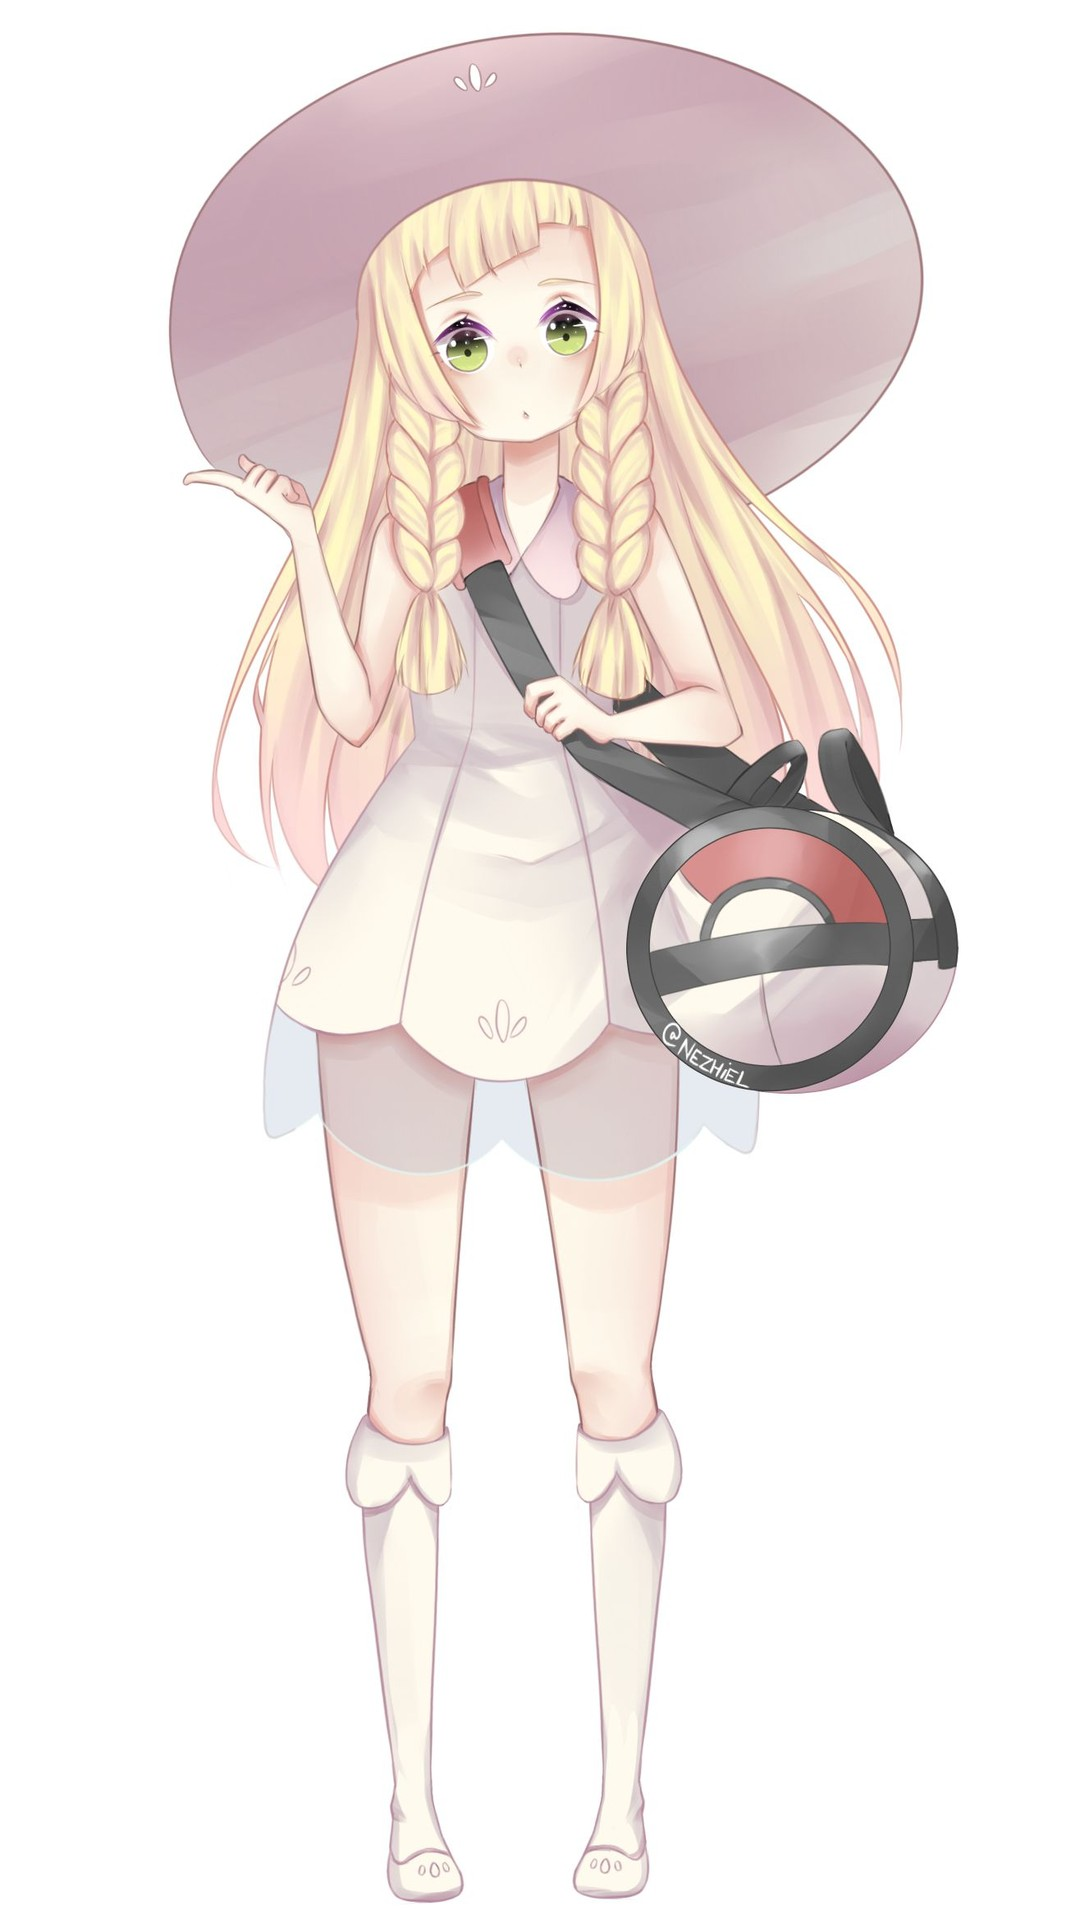 lillie_(pokemon)090